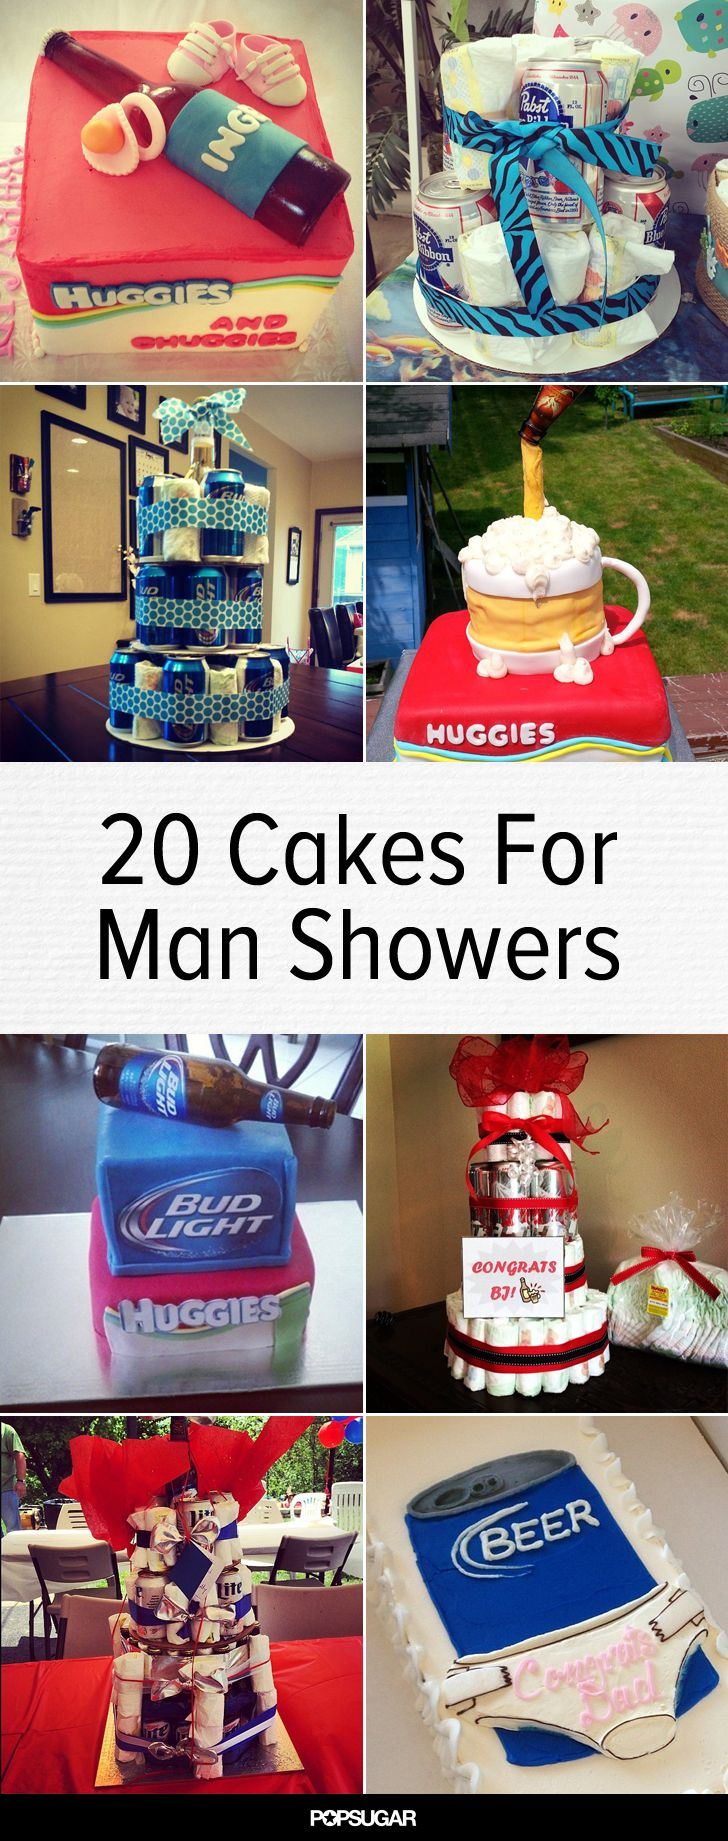 Huggies and Chuggies: 20 Cakes For Your Partner's Man Shower